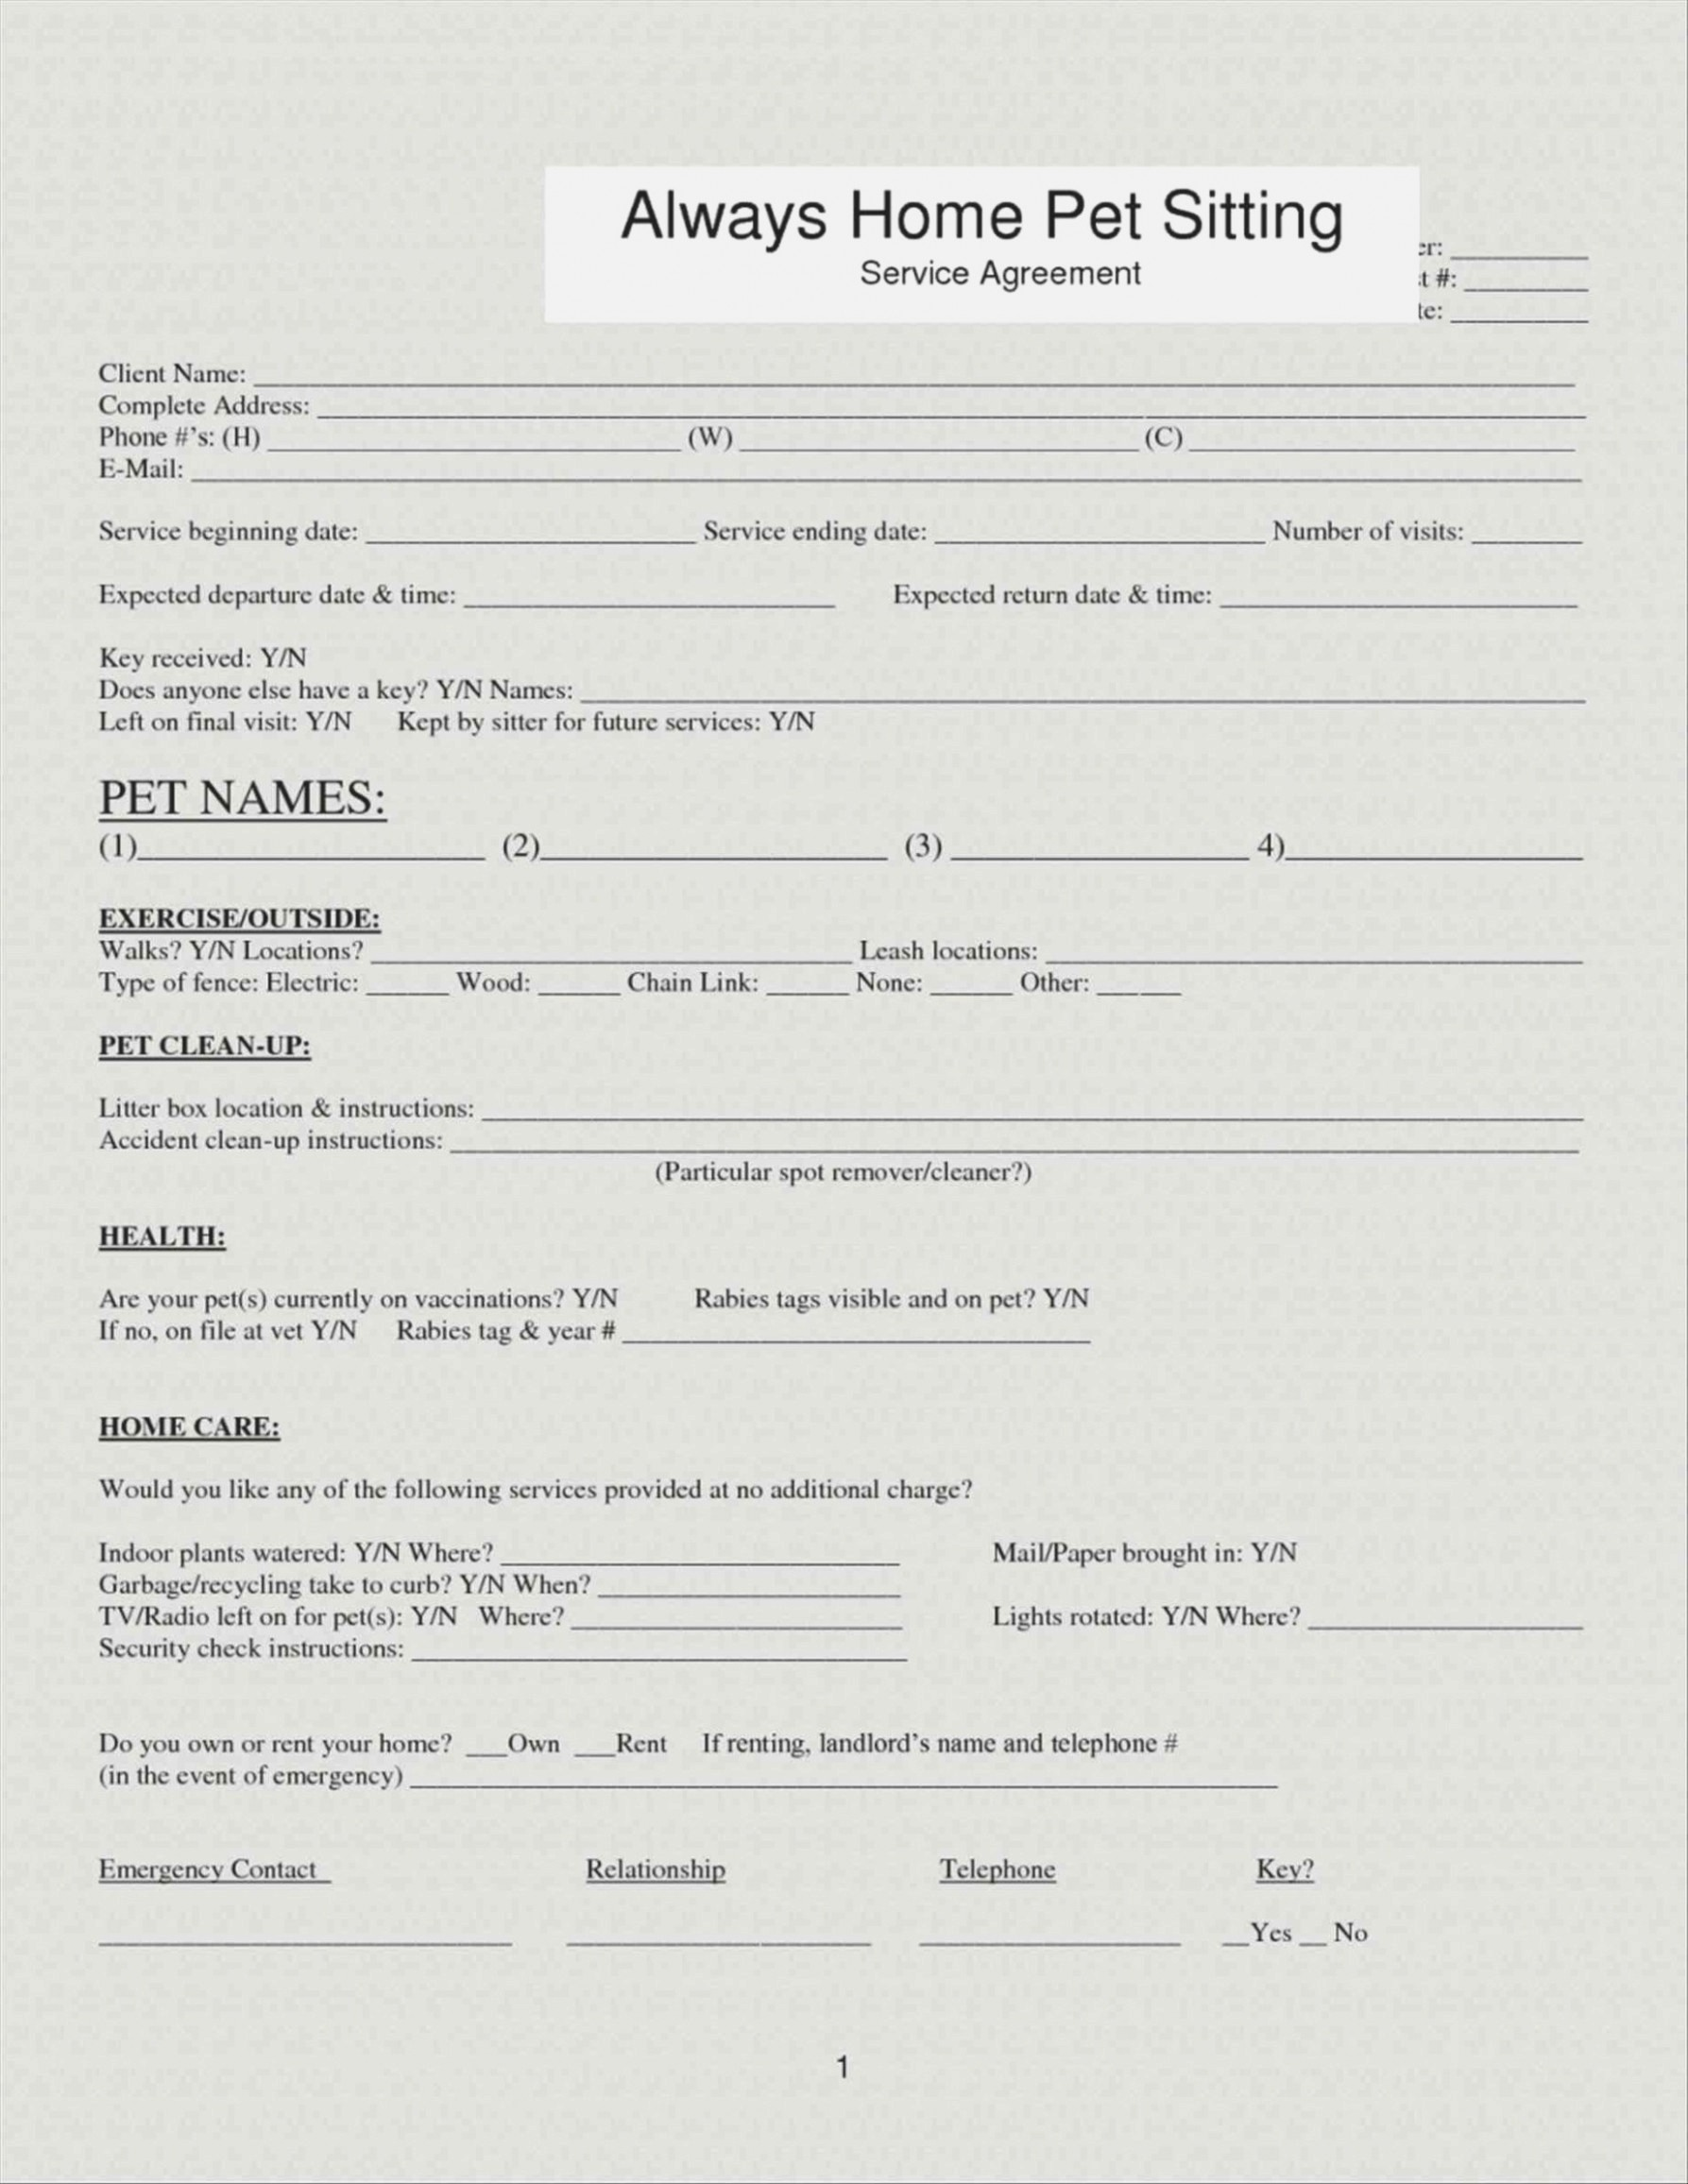 Pet Sitting Client Information form Beautiful Pet Sitting form Pet Care Agreement Create A Free Pet